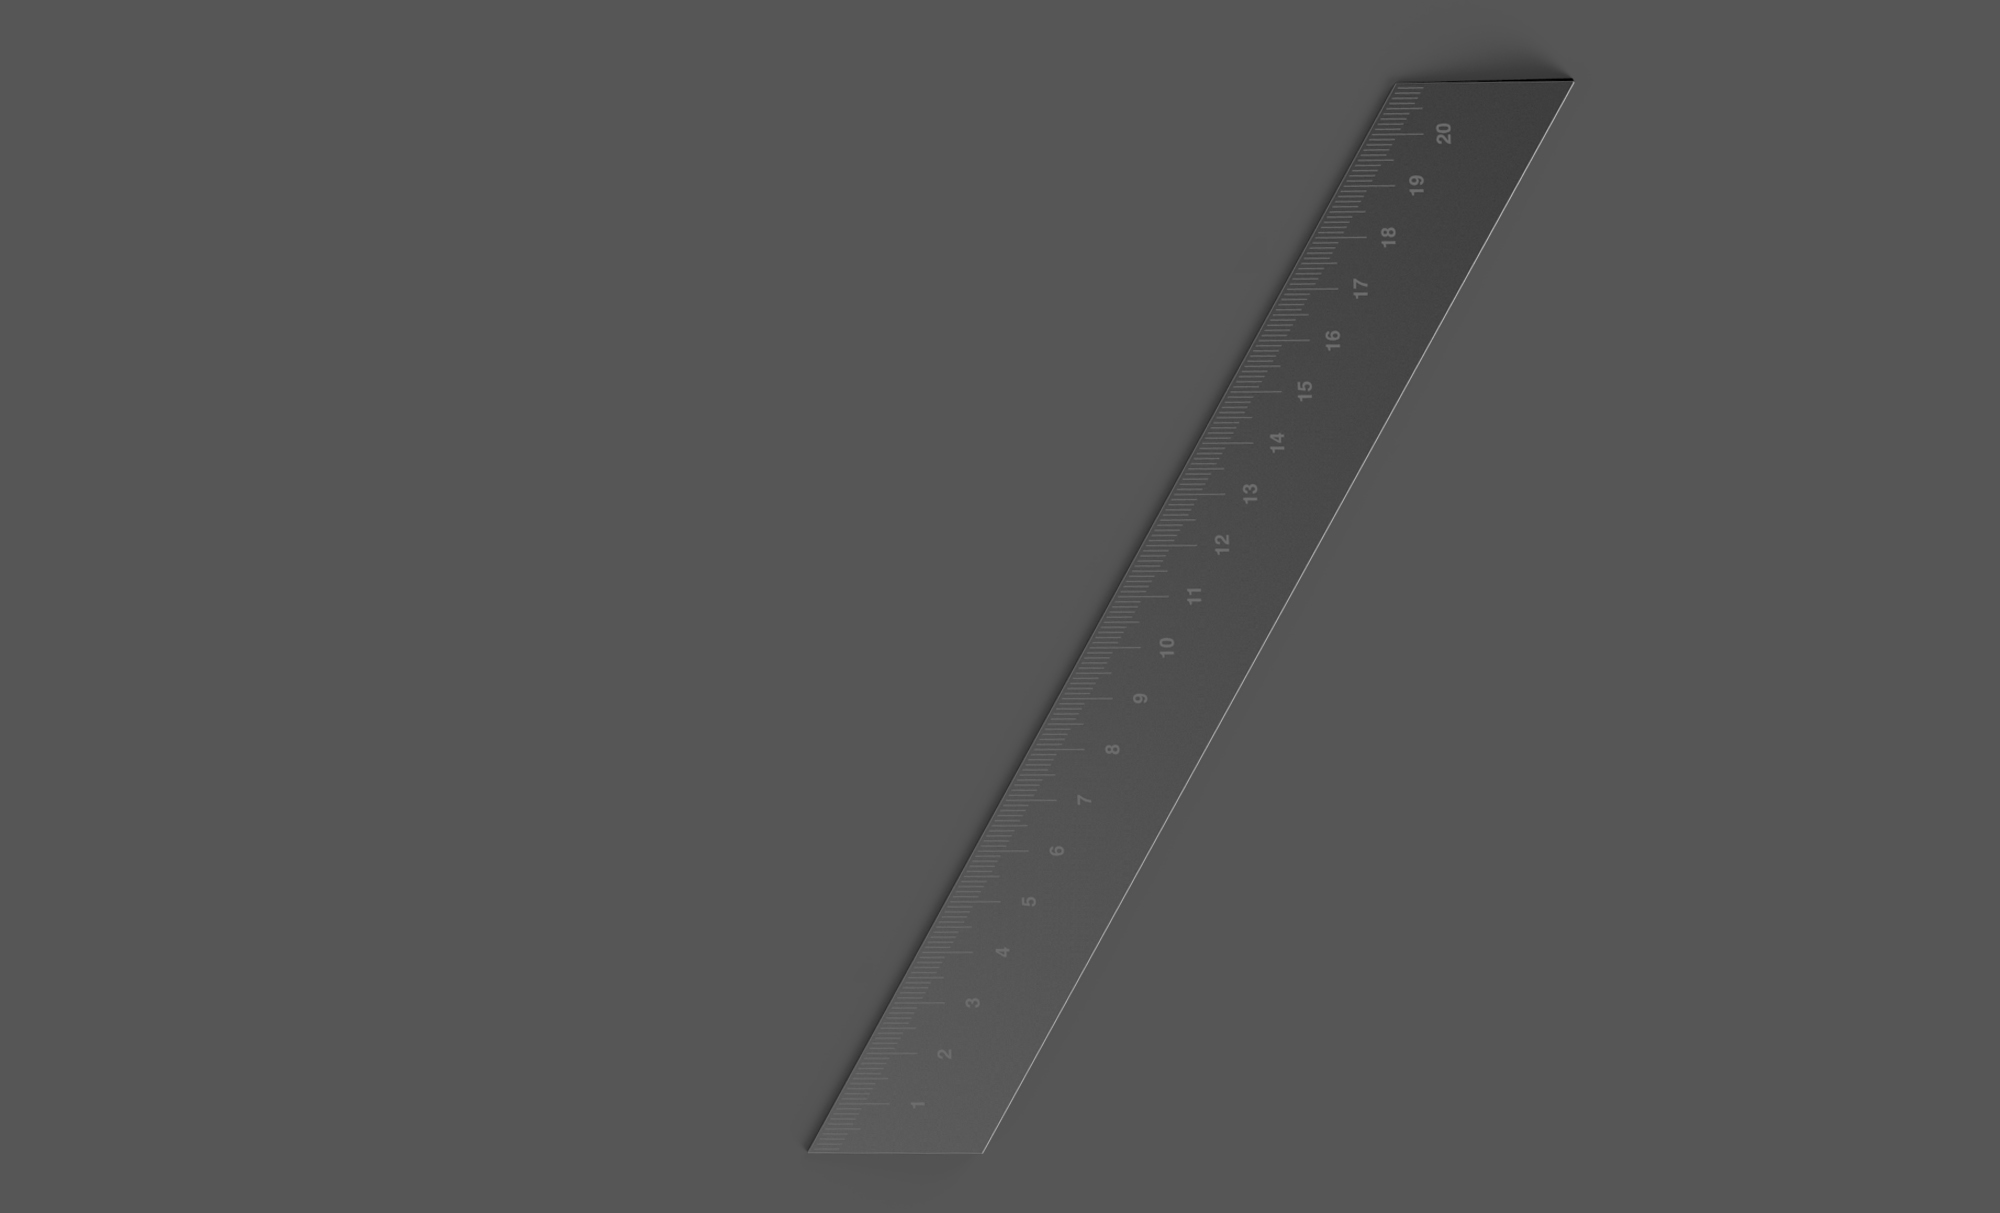 12monthly_201602_ruler_01.jpg